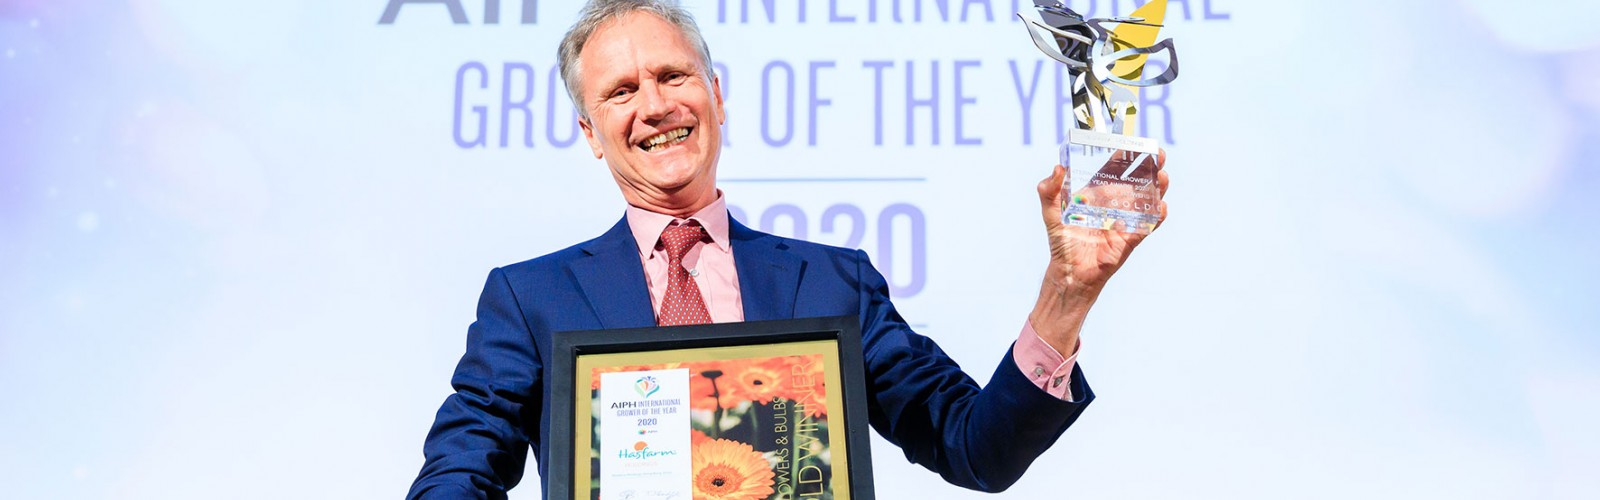 HASFARM - WINNER OF THE AIPH INTERNATIONAL GROWER OF THE YEAR AWARD 2020